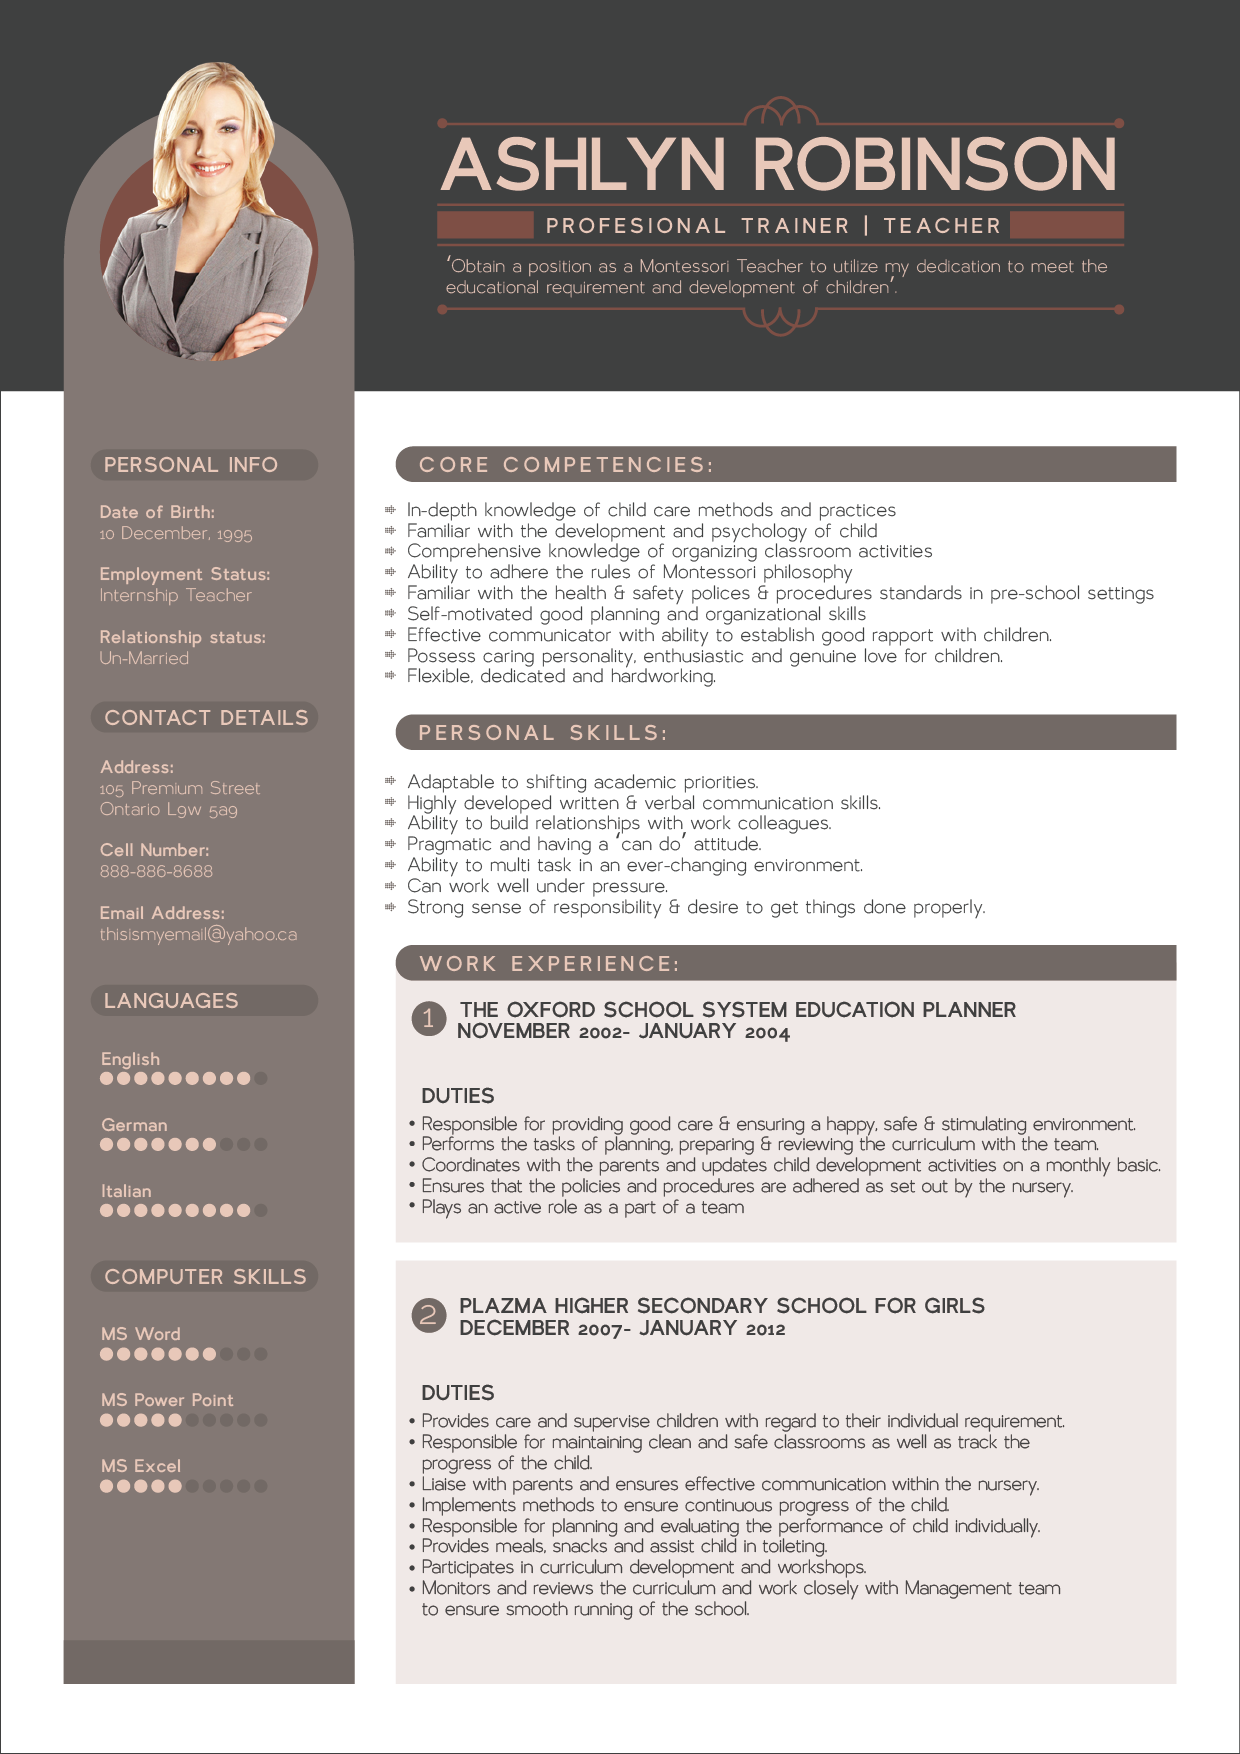 Free Resume Cv Design Template For Trainers Amp Teachers